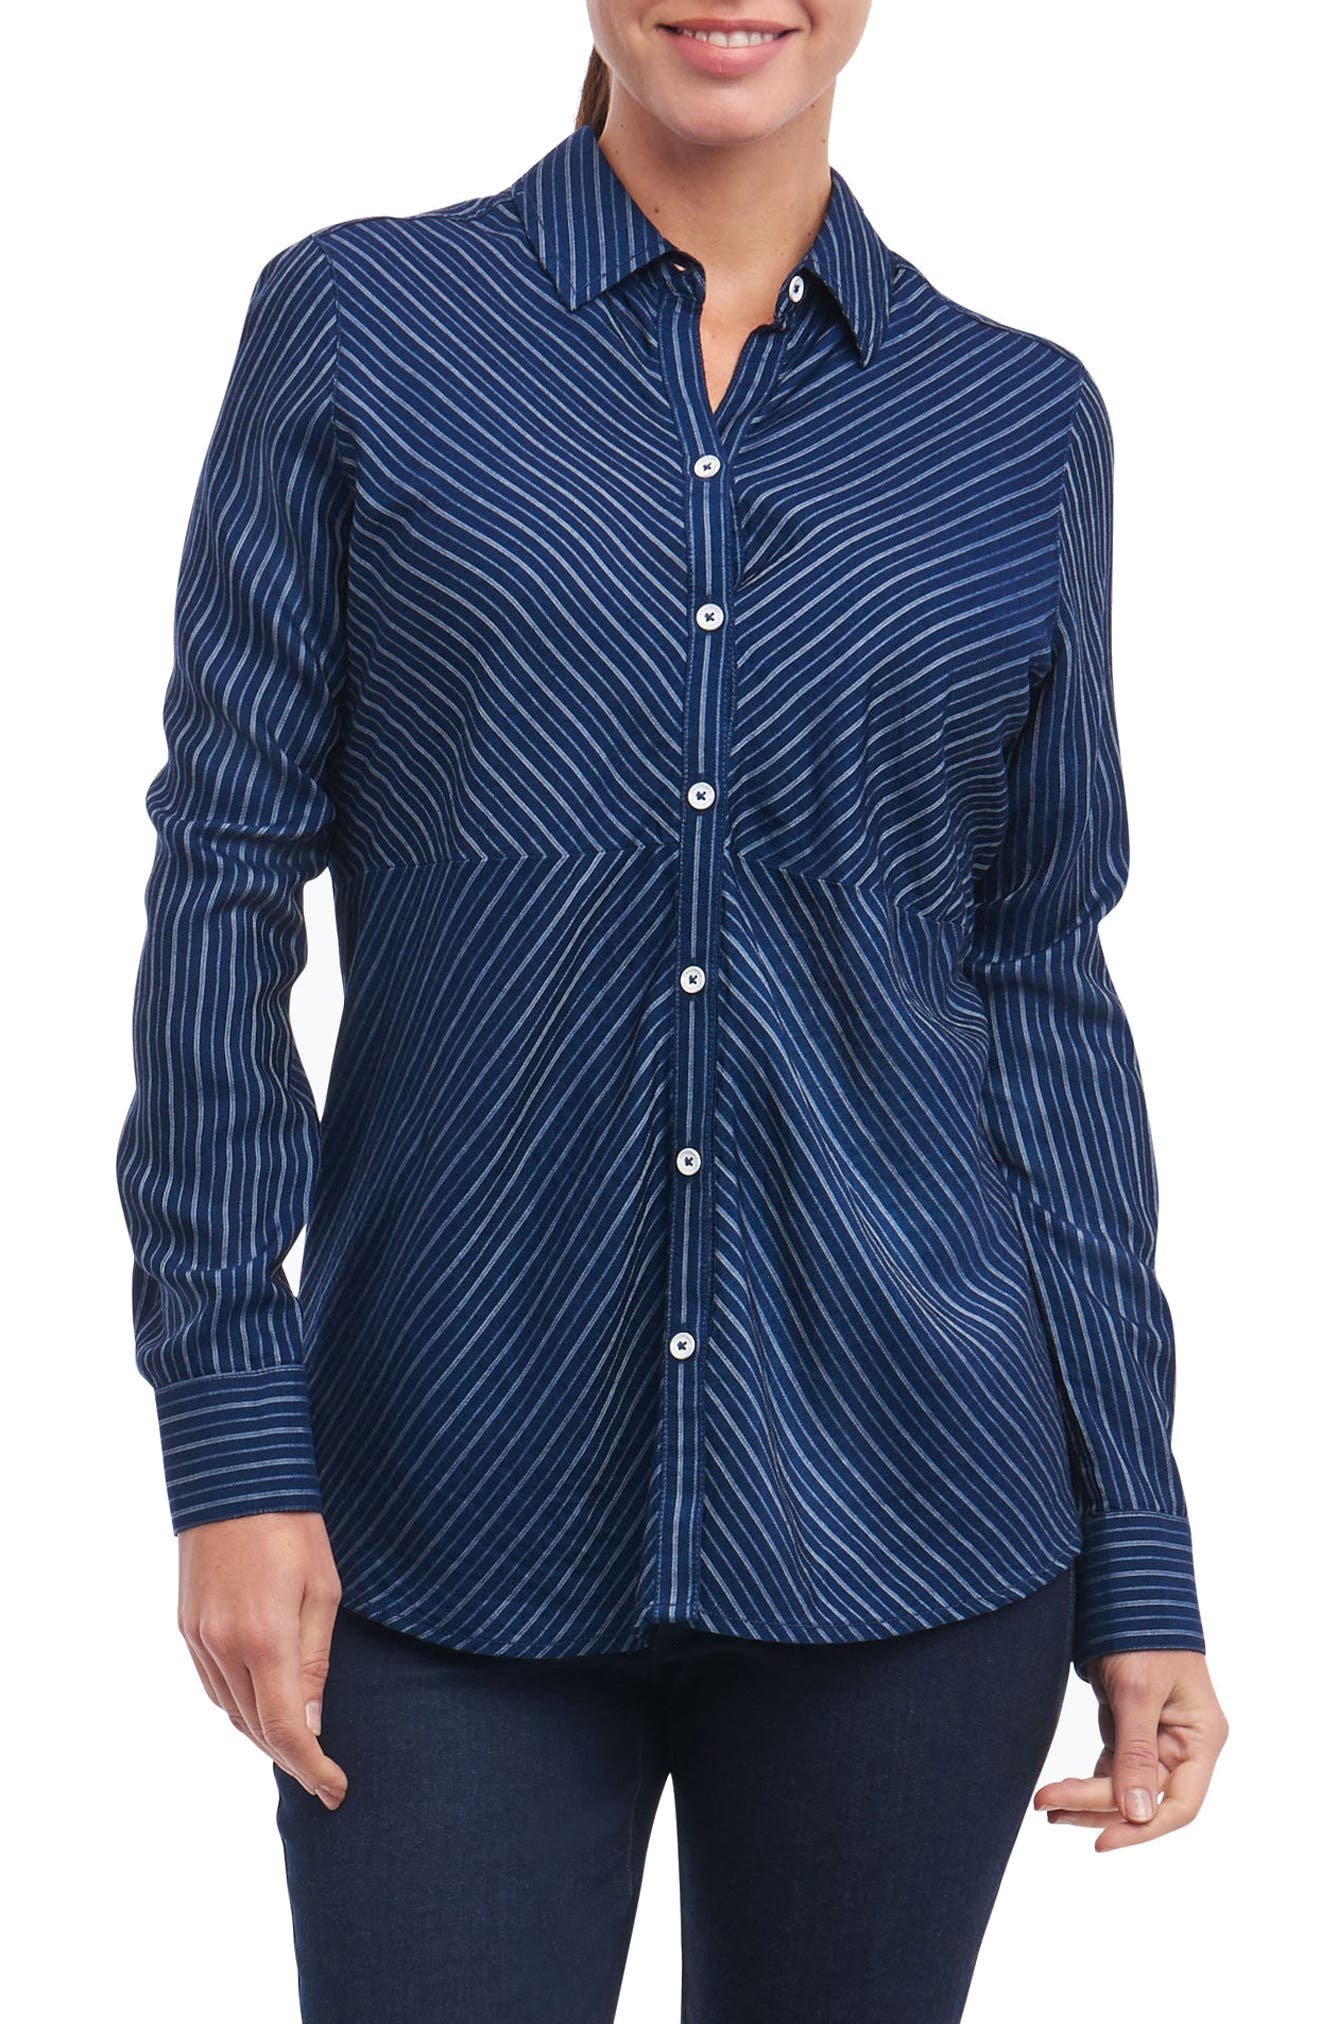 Hazel Pinstripe Shirt,                         Main,                         color, Navy